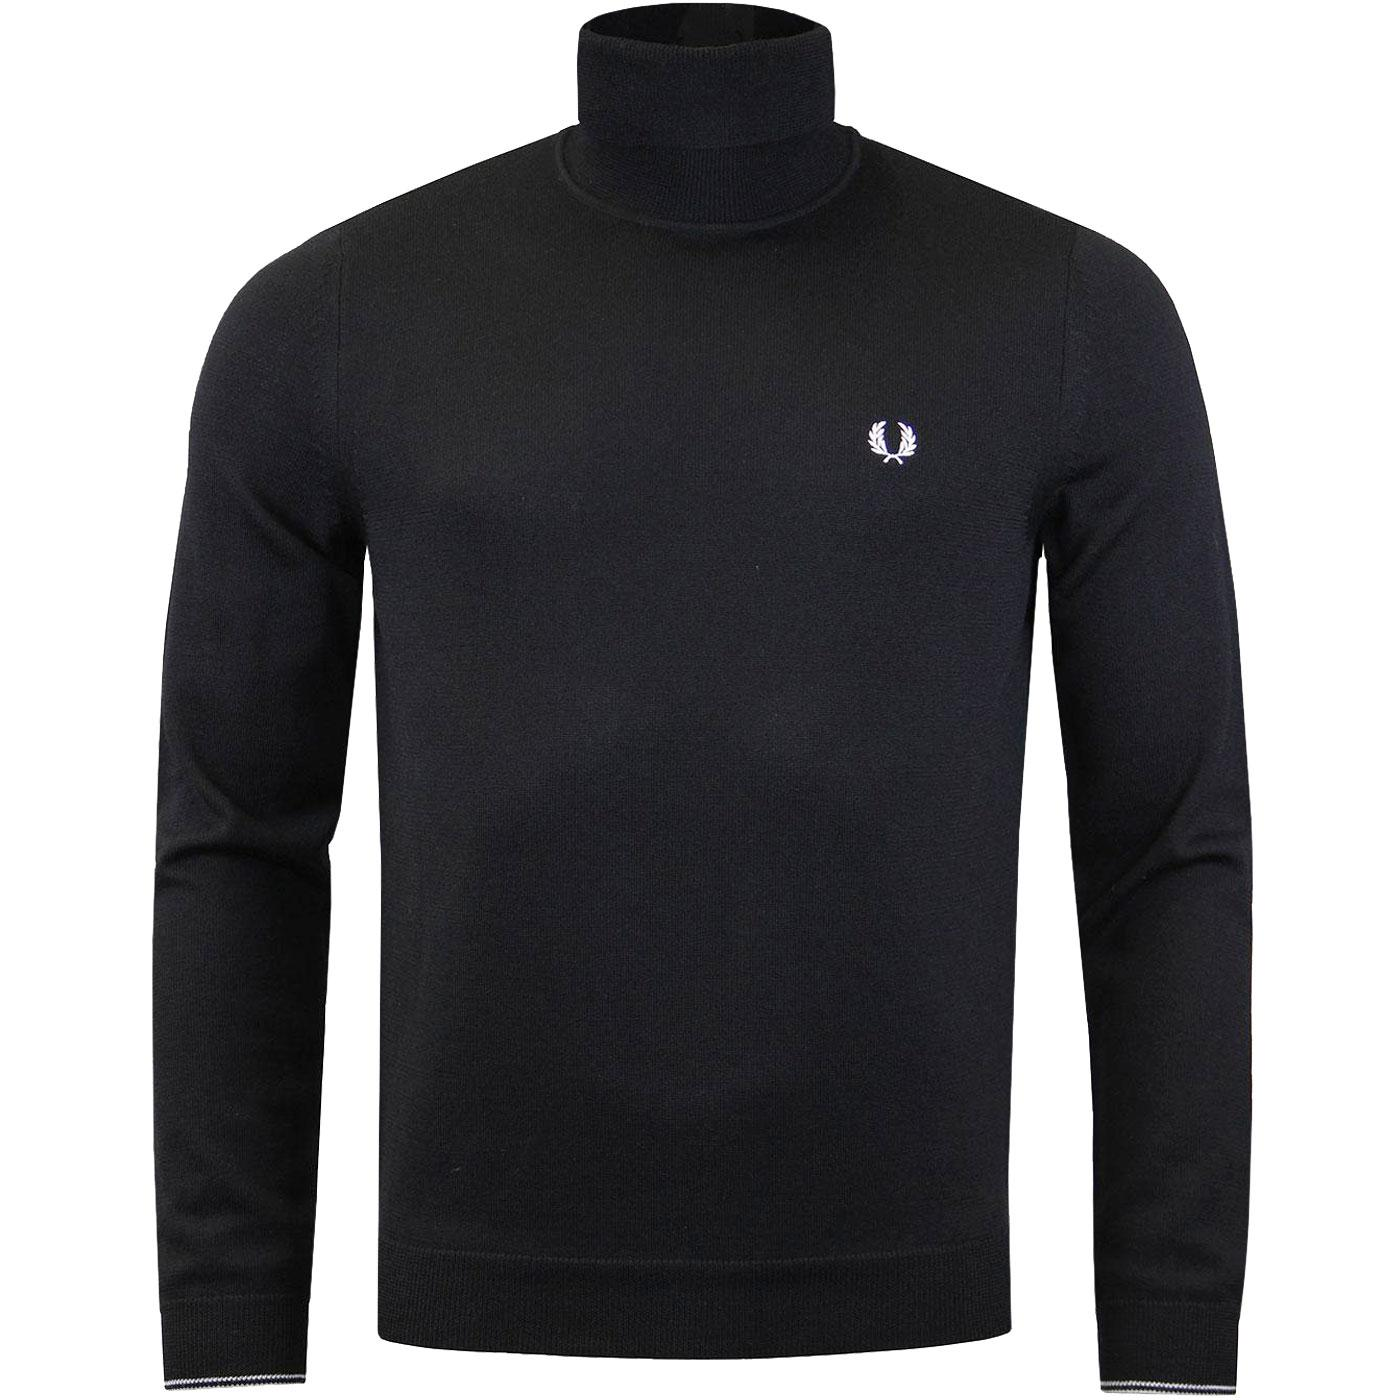 FRED PERRY Knitted Merino Wool Roll Neck Jumper B